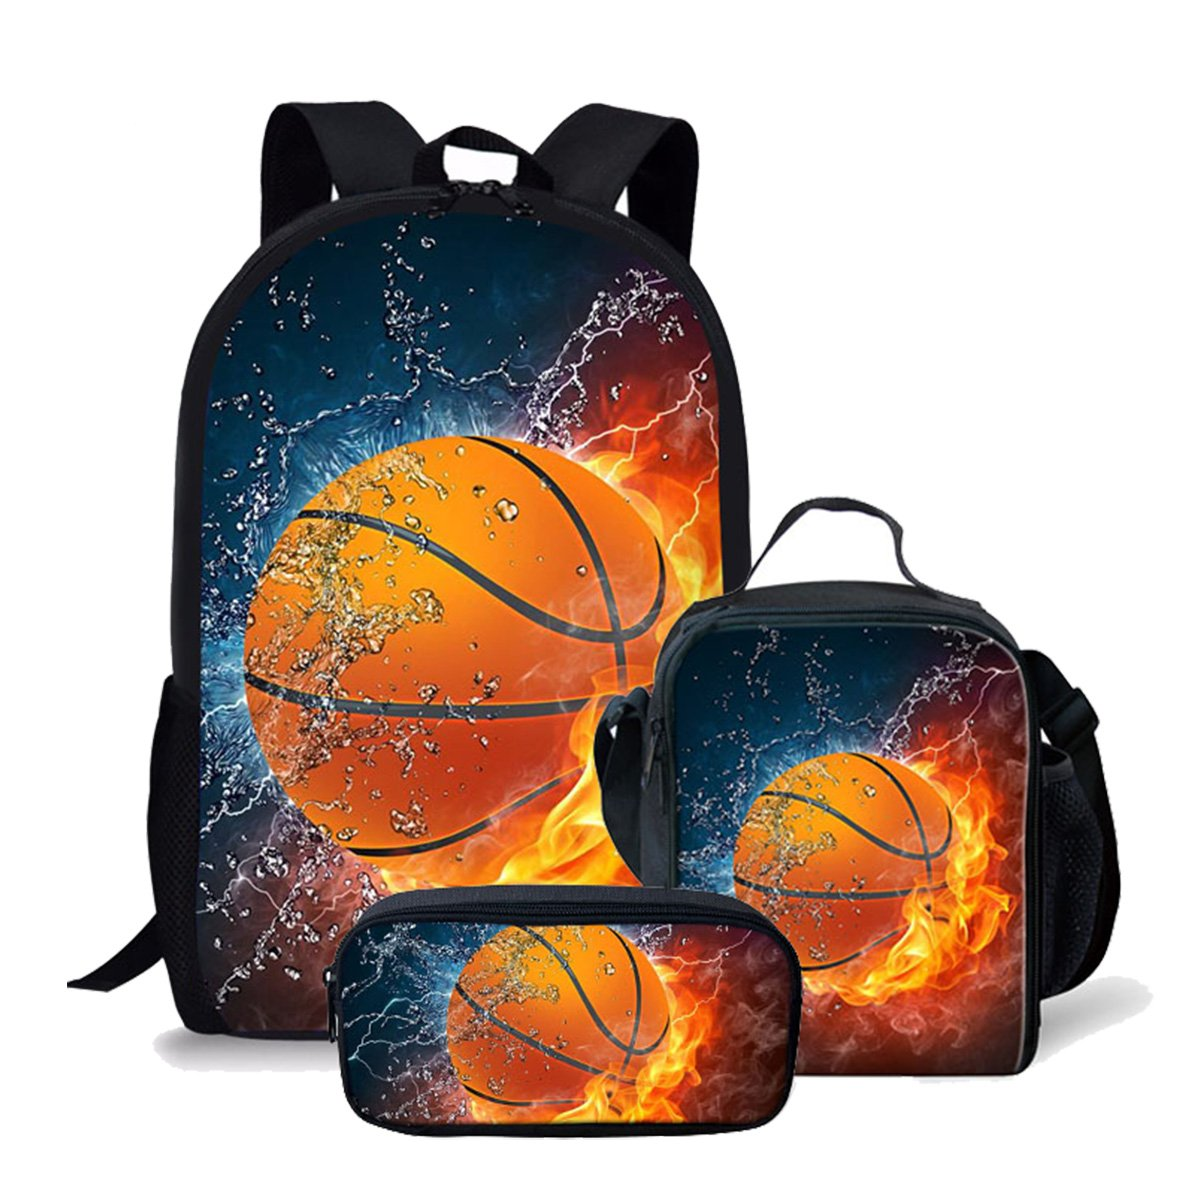 Kids Flame Basketball Backpack Schoolbag Bookbag Lunch Bag Pencil Pouch 3 Piece Set